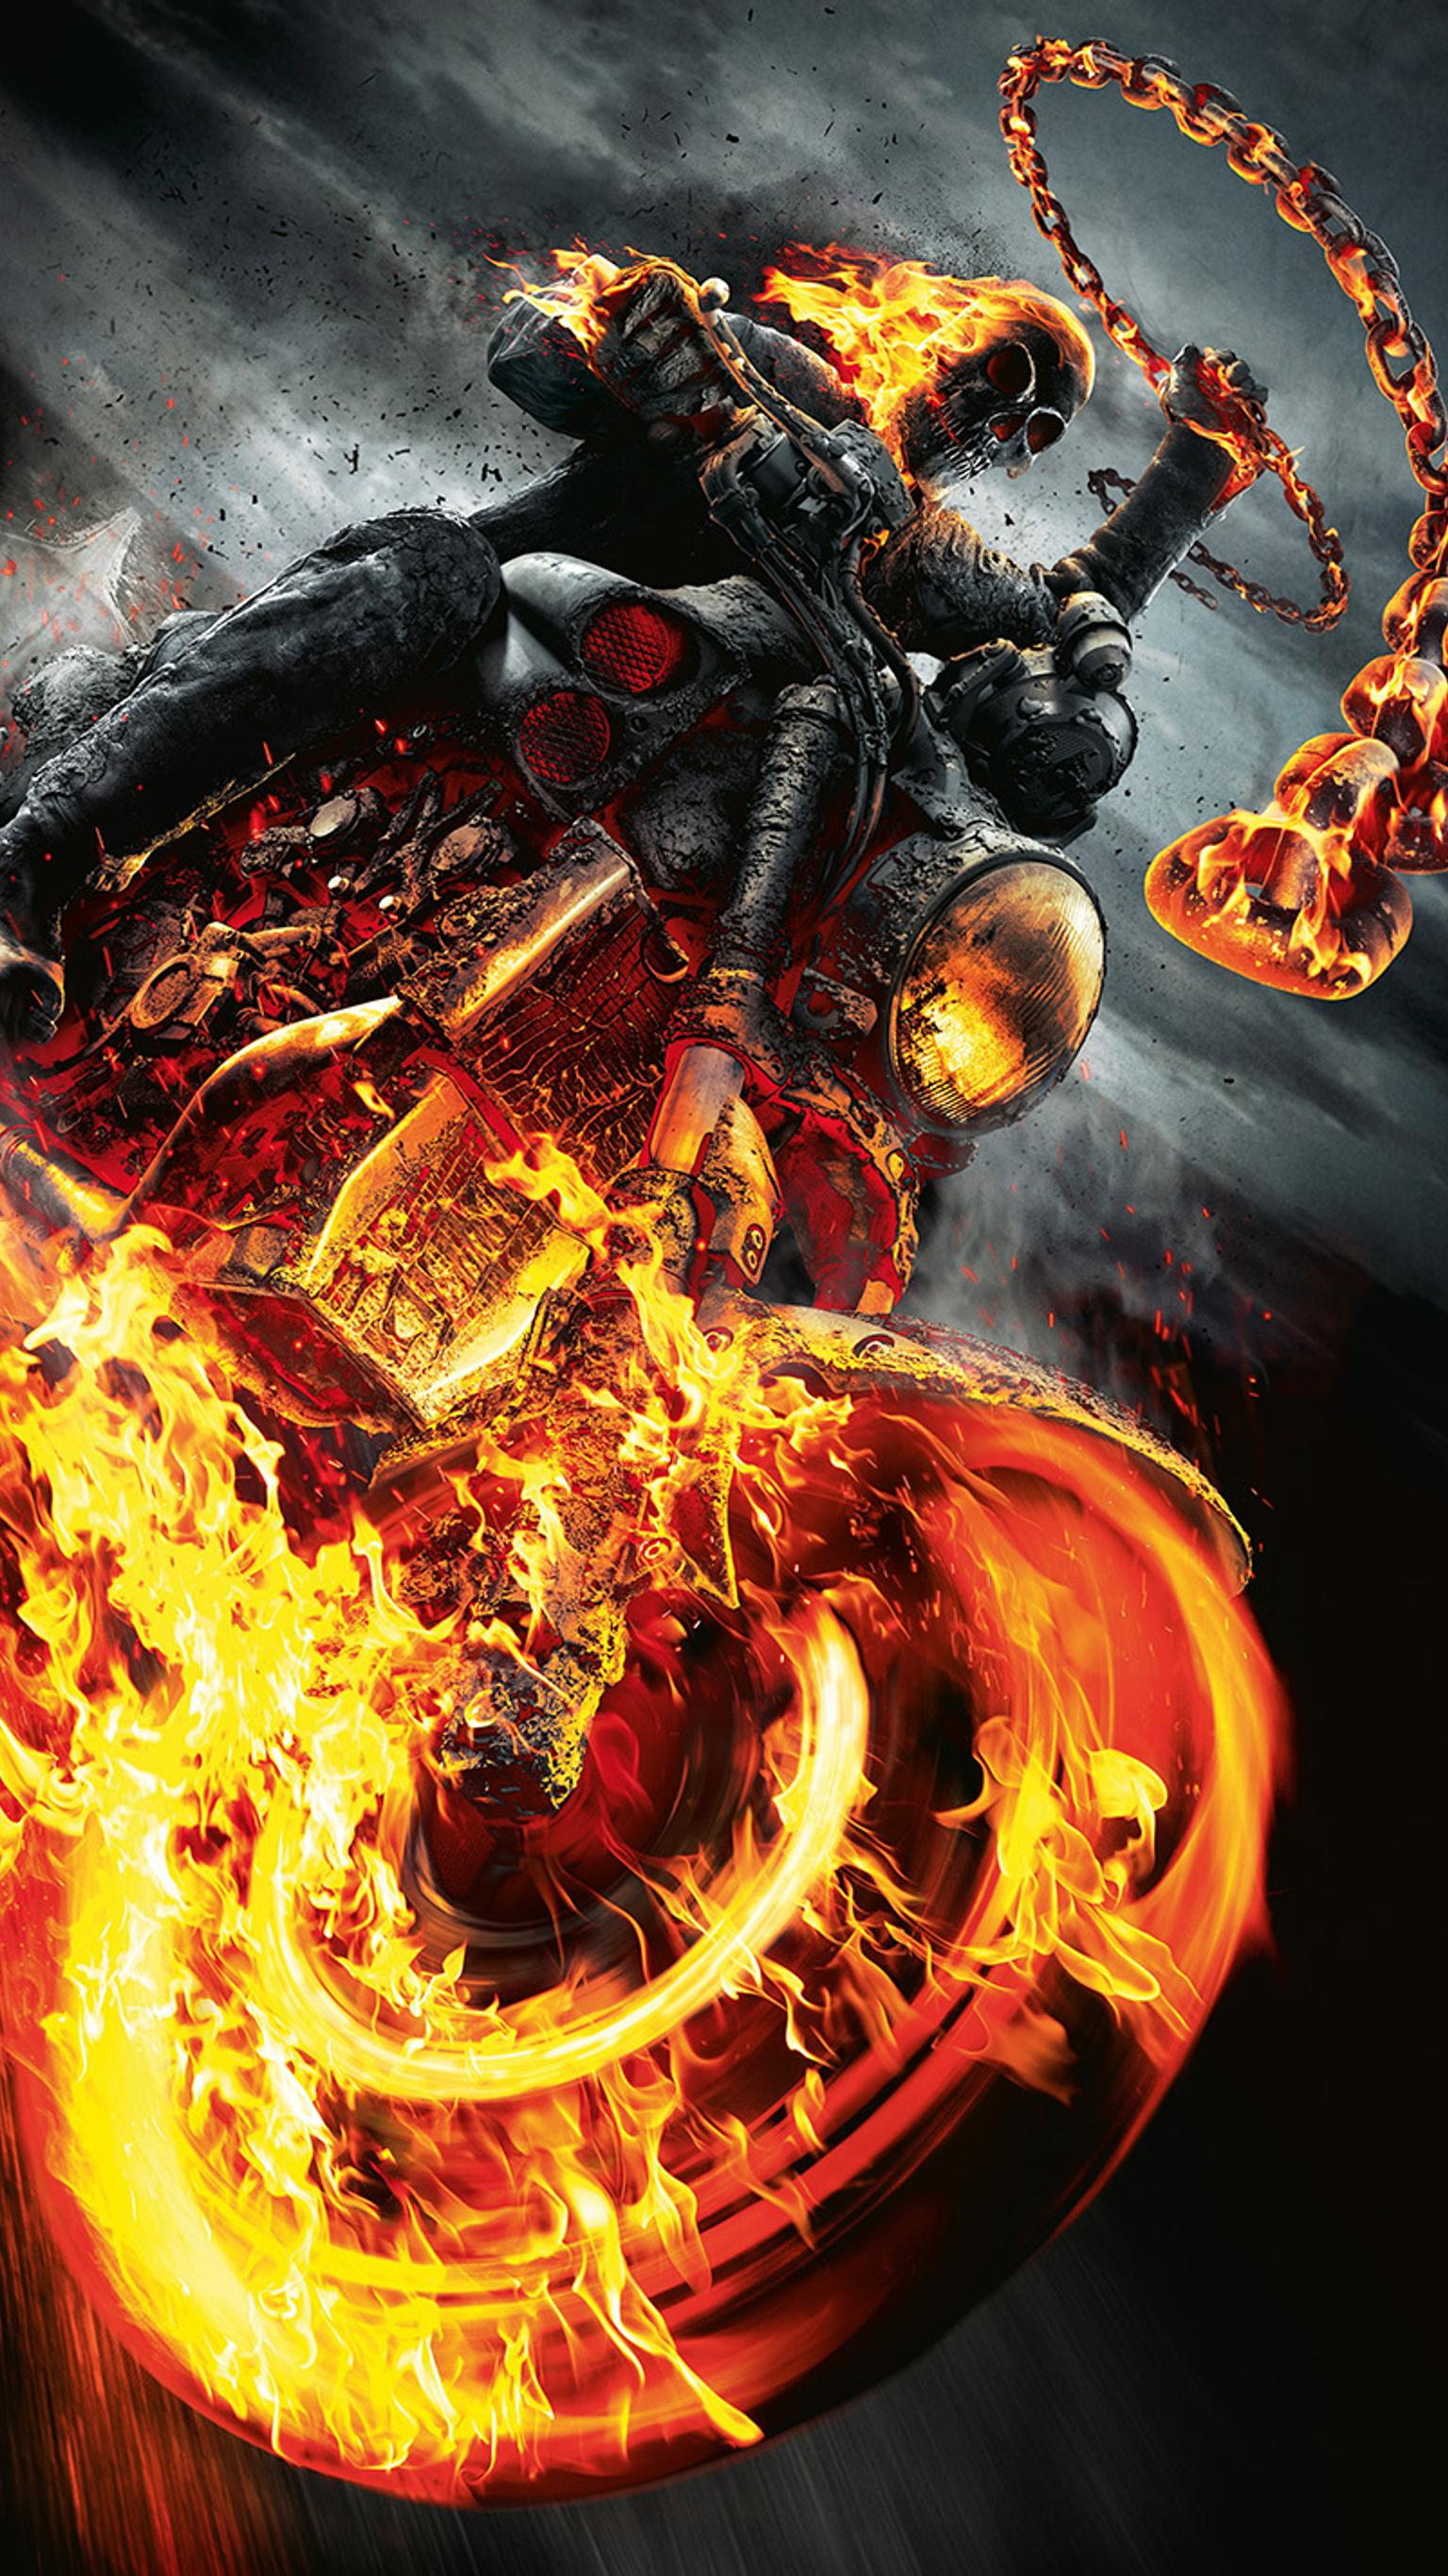 Ghost Rider Iphone Wallpapers Top Free Ghost Rider Iphone Backgrounds Wallpaperaccess